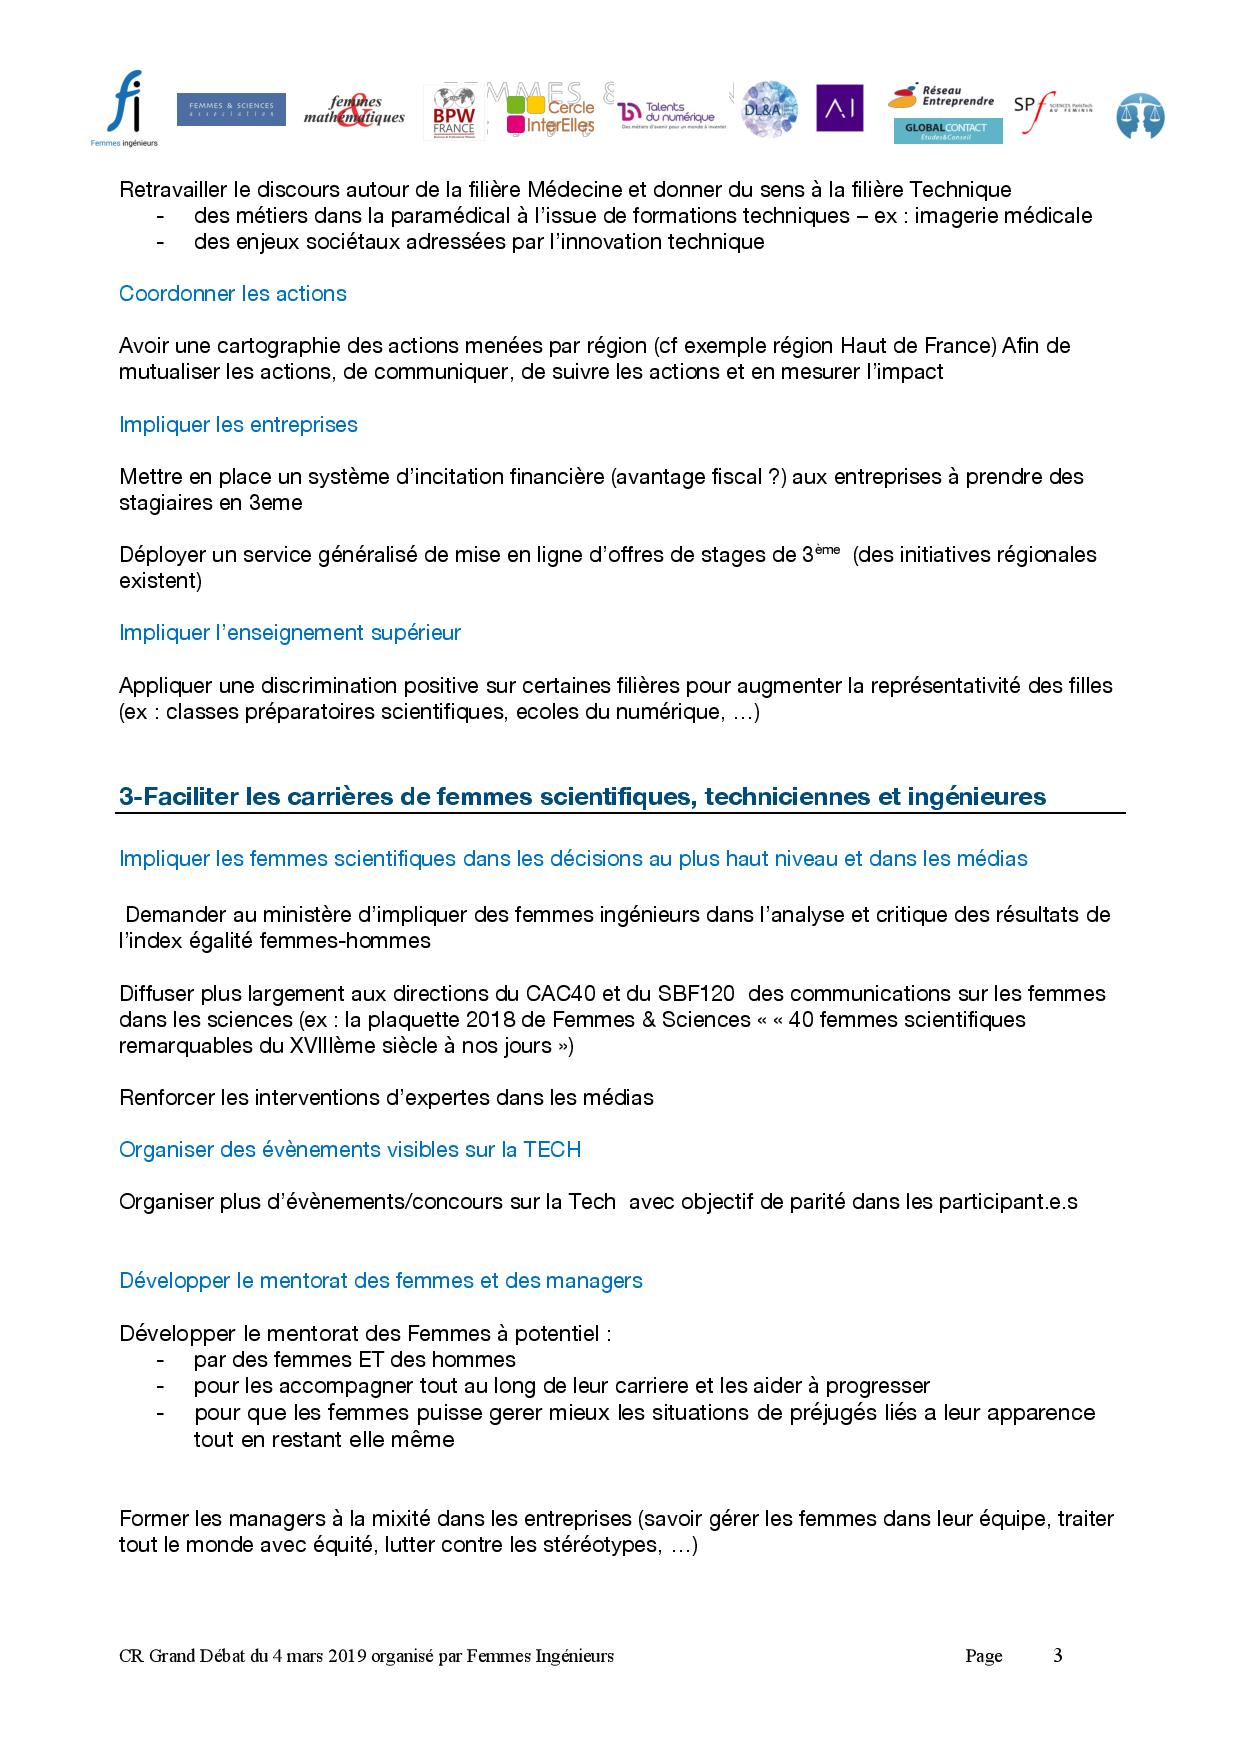 20190403 FI Grand Debat Propositions V3-page-003